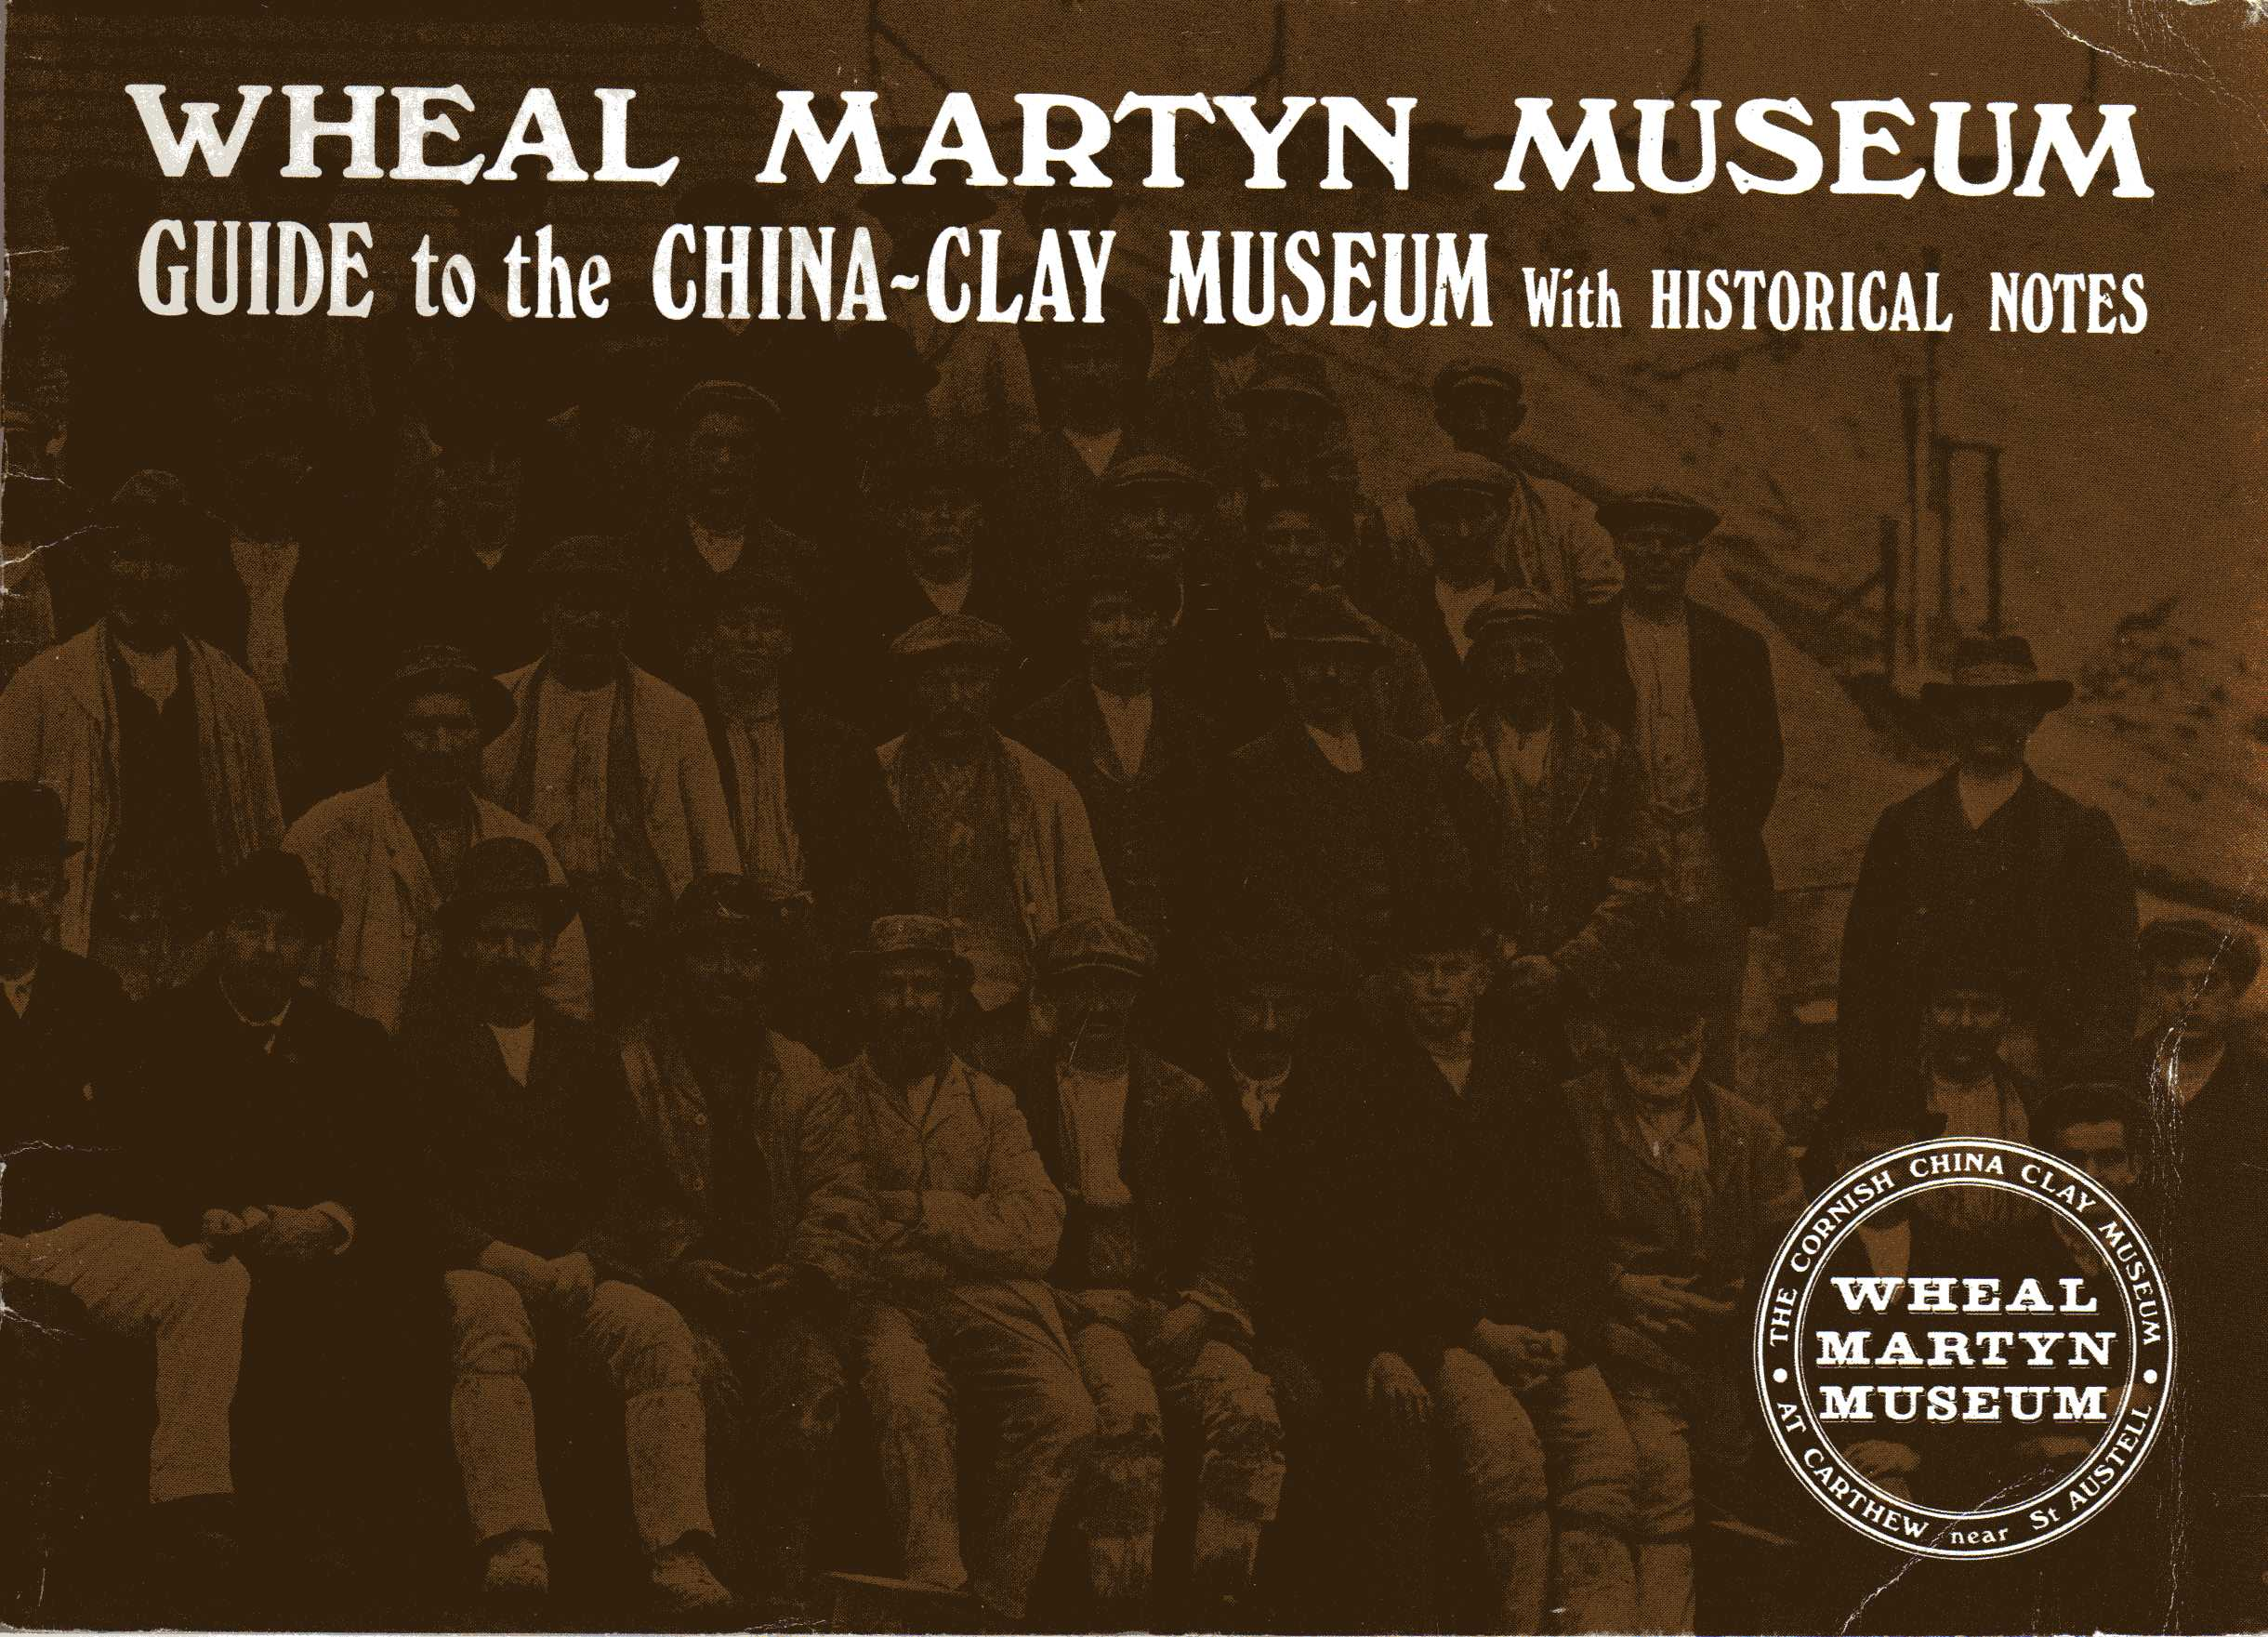 [USED] Wheal Martyn Museum